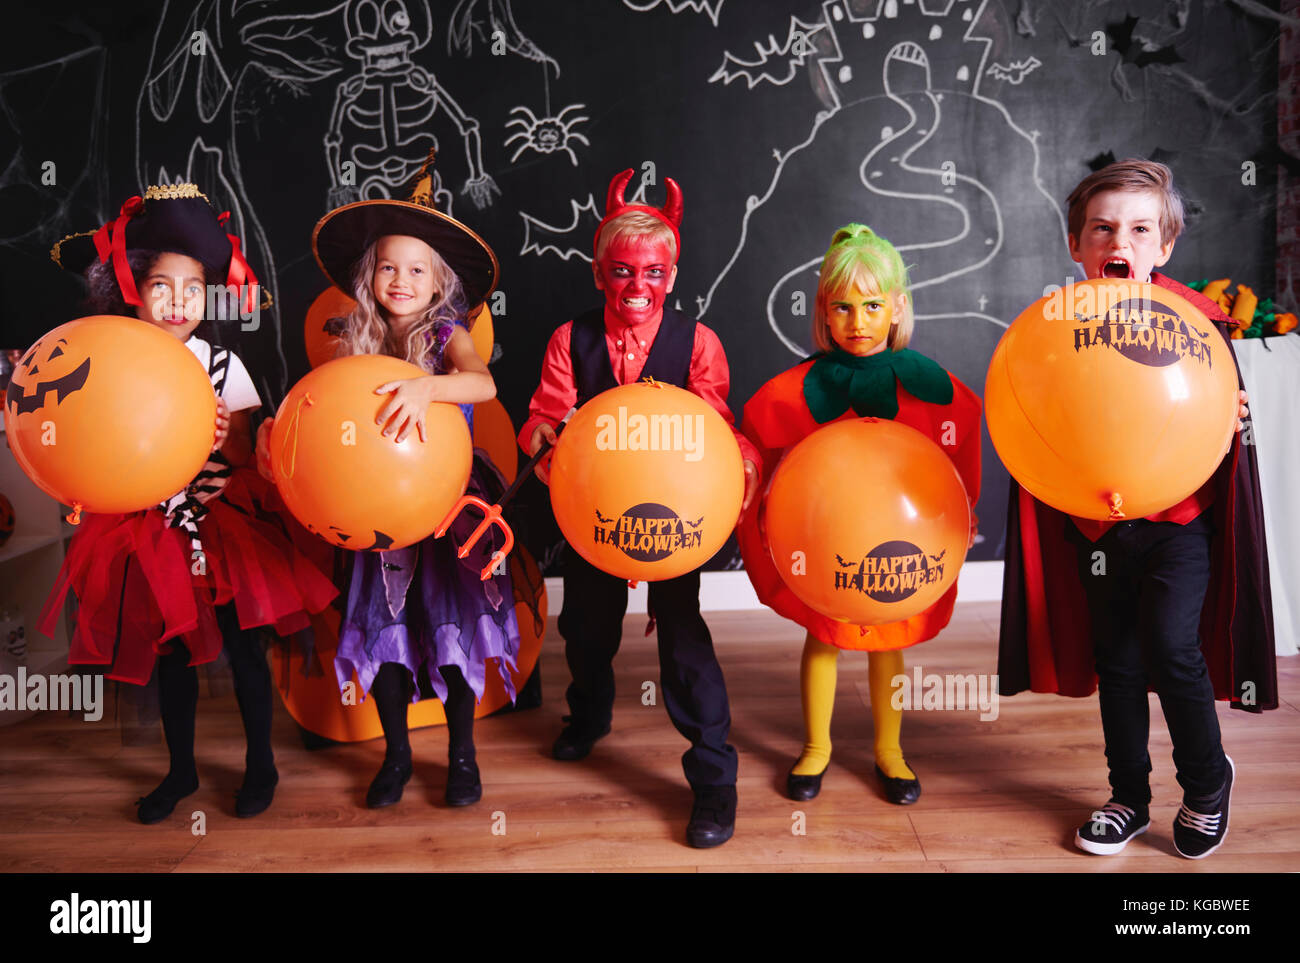 Children in costume standing in a row and posing - Stock Image